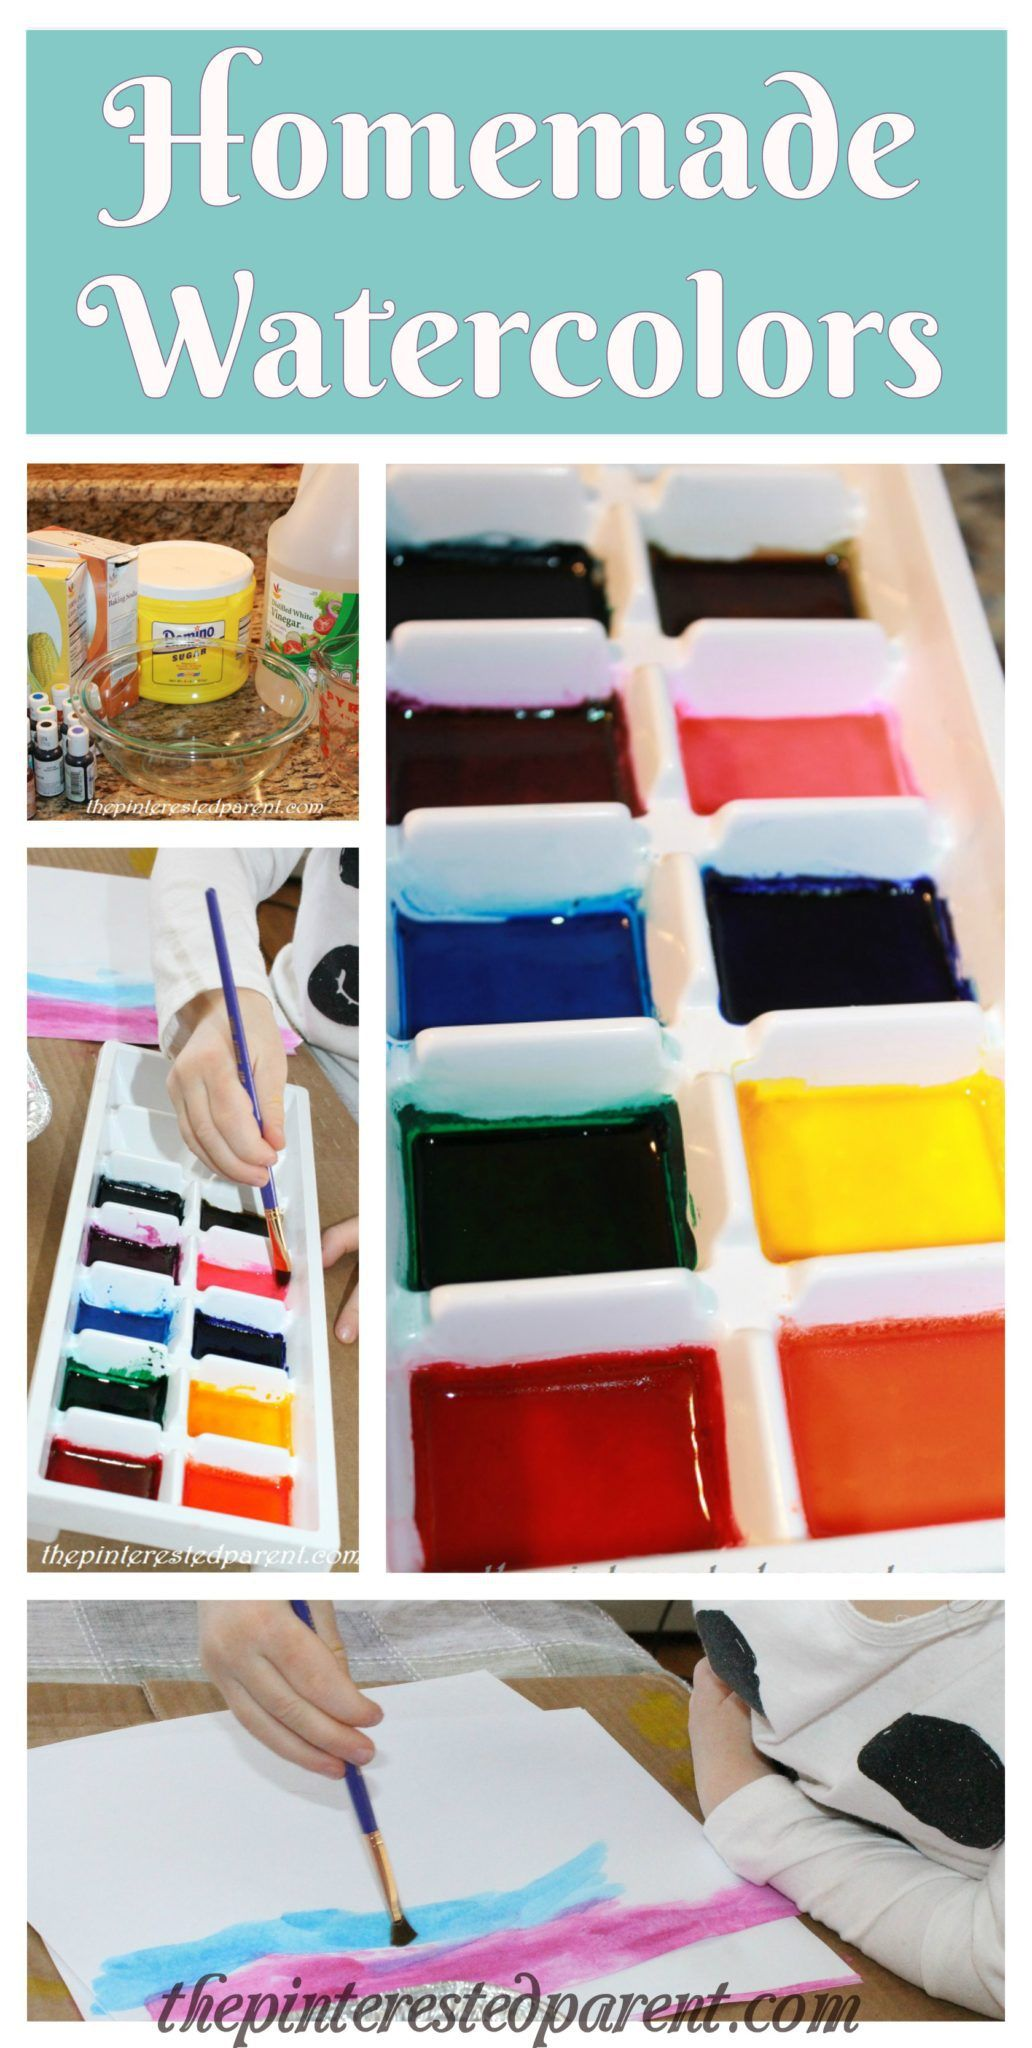 diy homemade watercolor paints. easy to make with simple